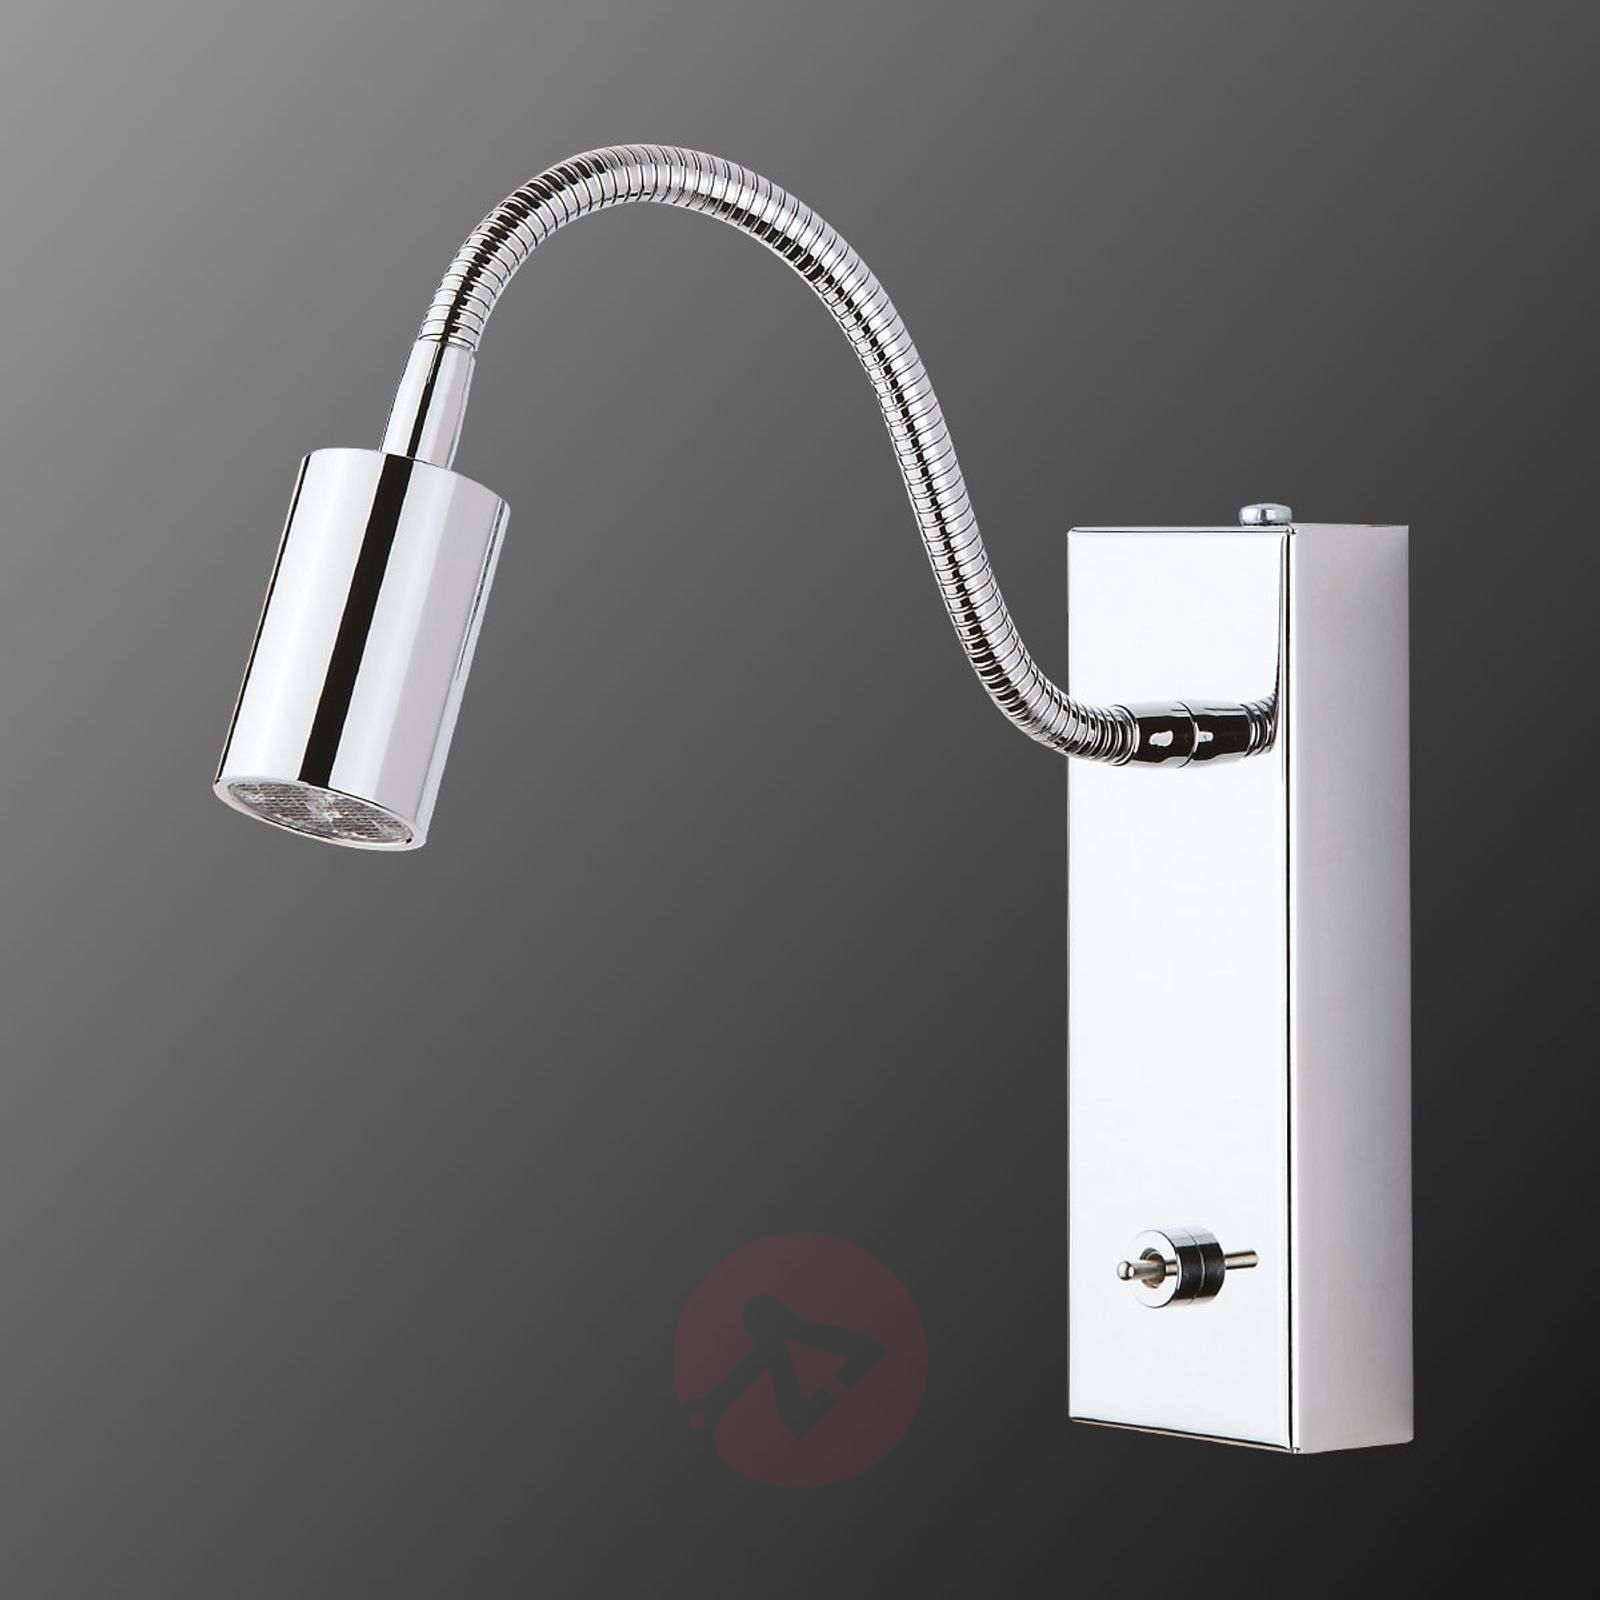 Portable led wall light with switch lights portable led wall light with switch 1524091 01 aloadofball Image collections